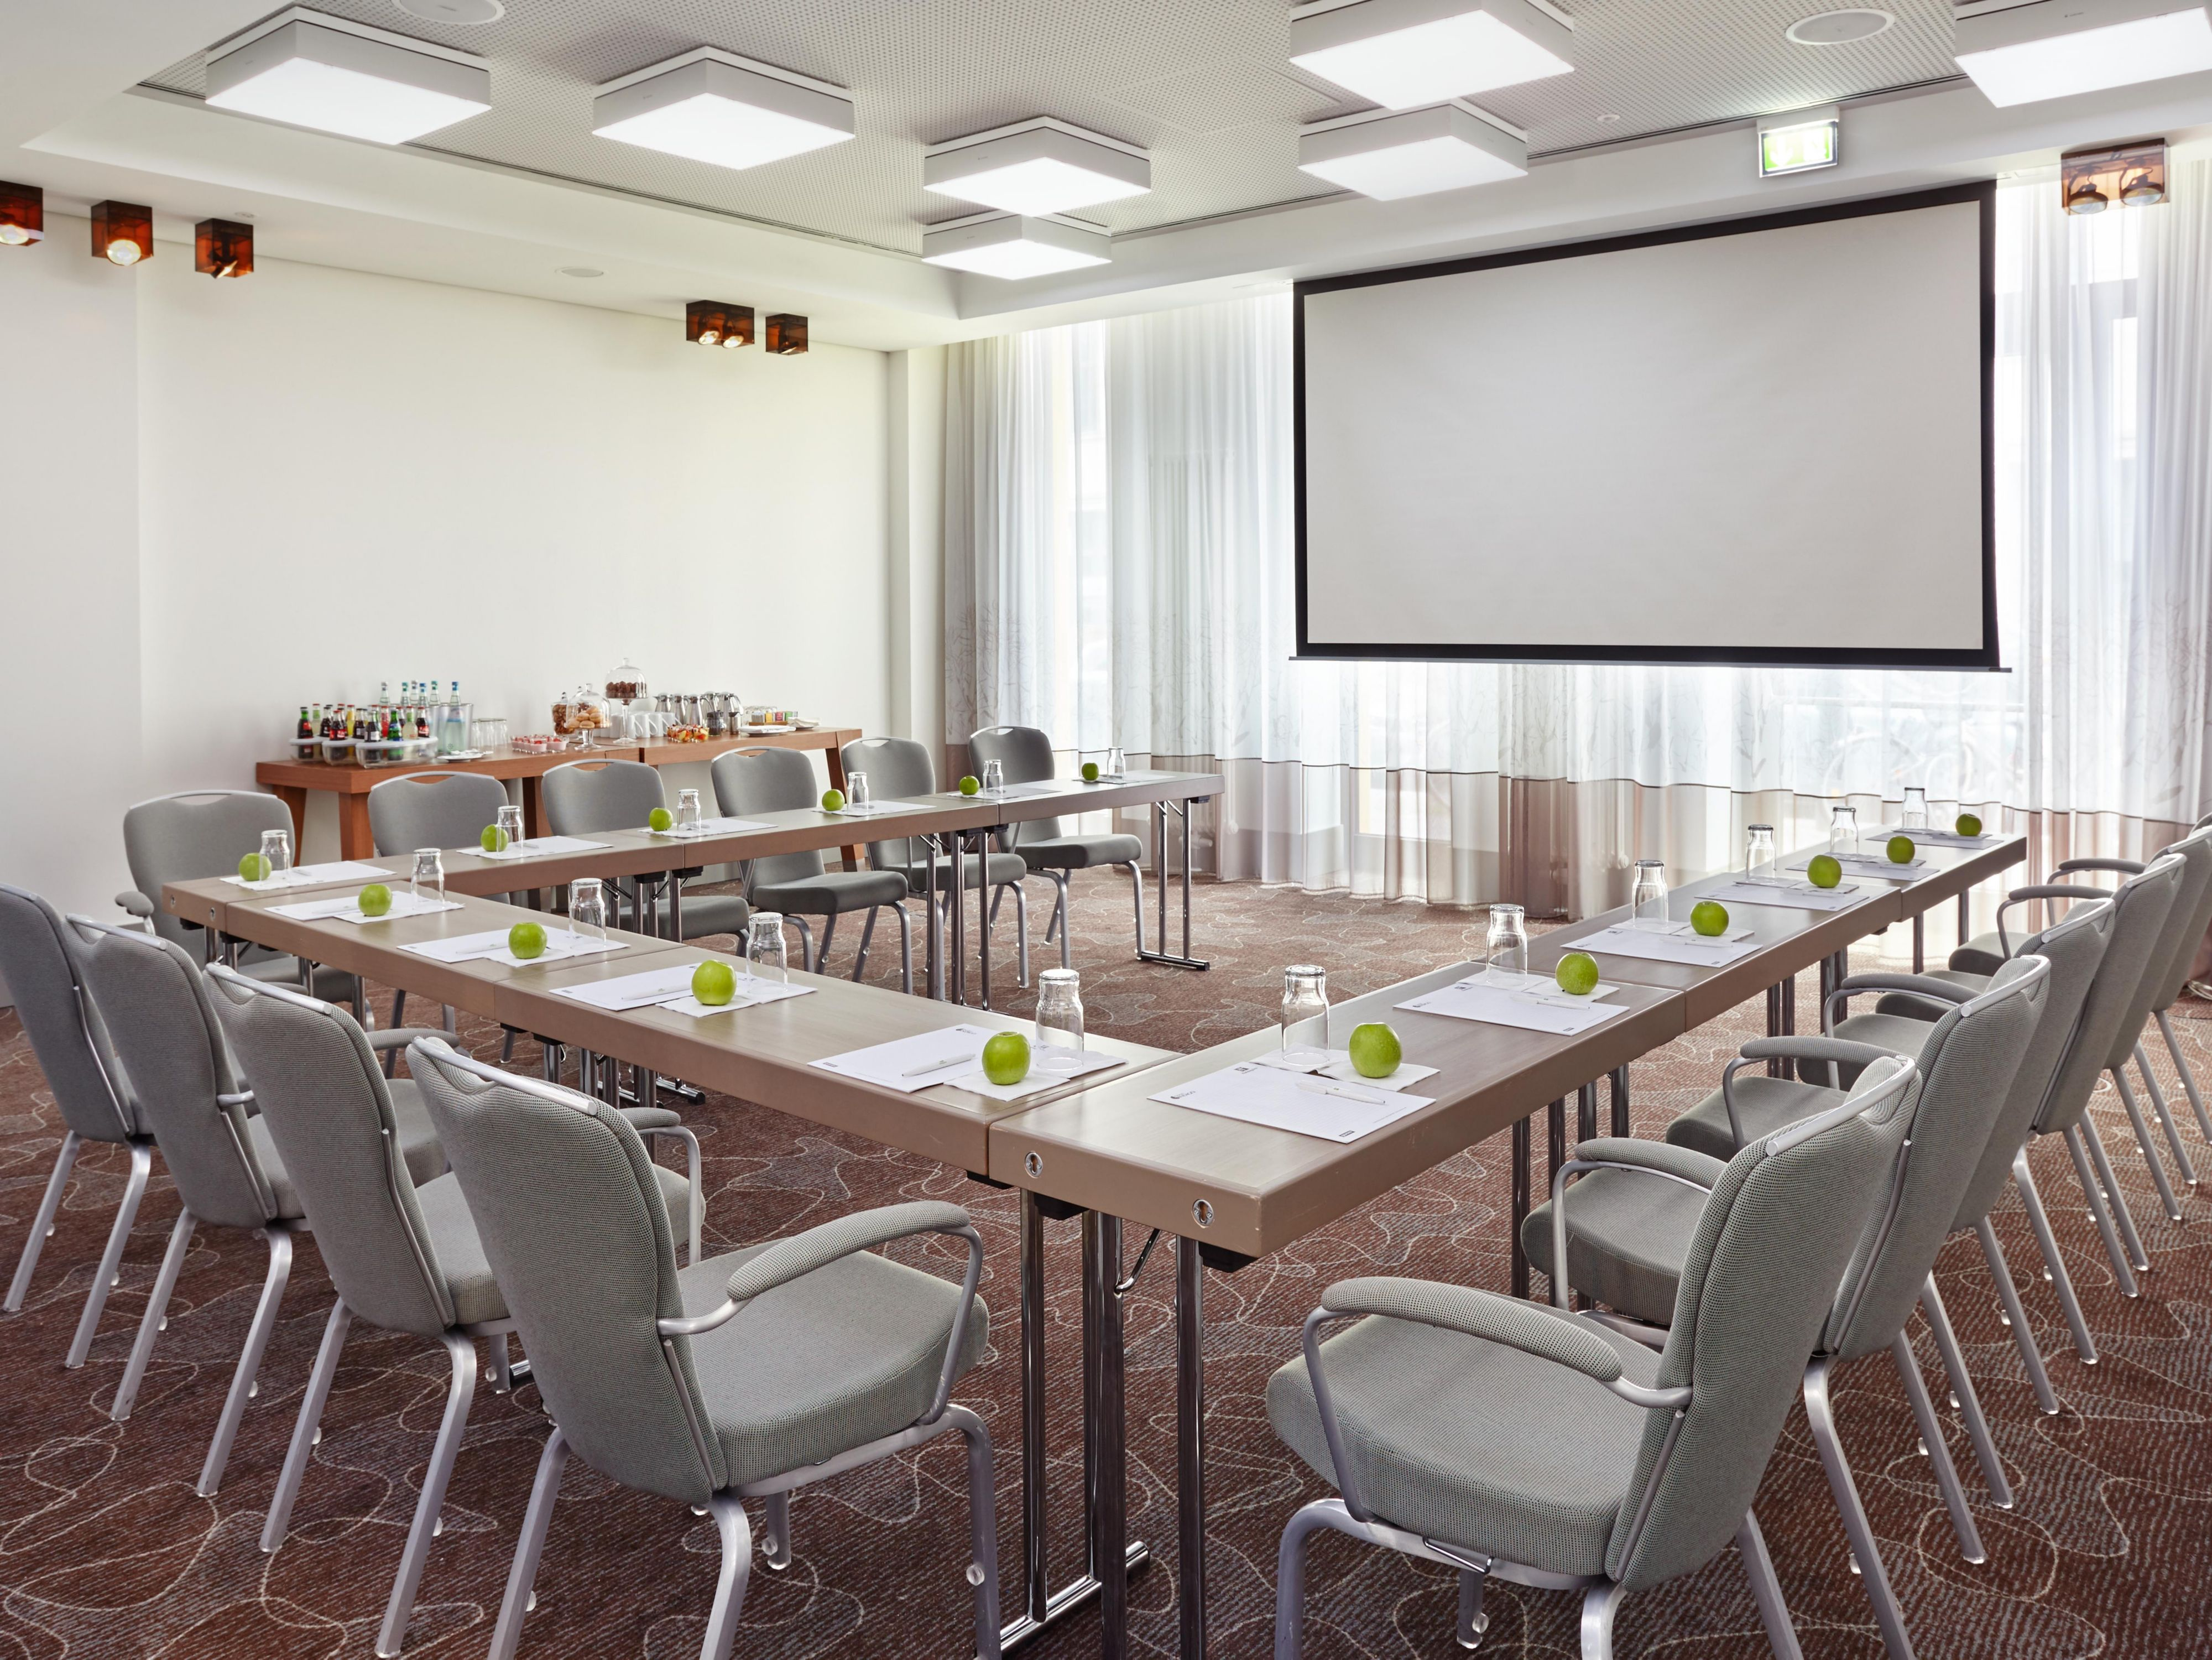 Monbijou Meeting Room U-shape set up